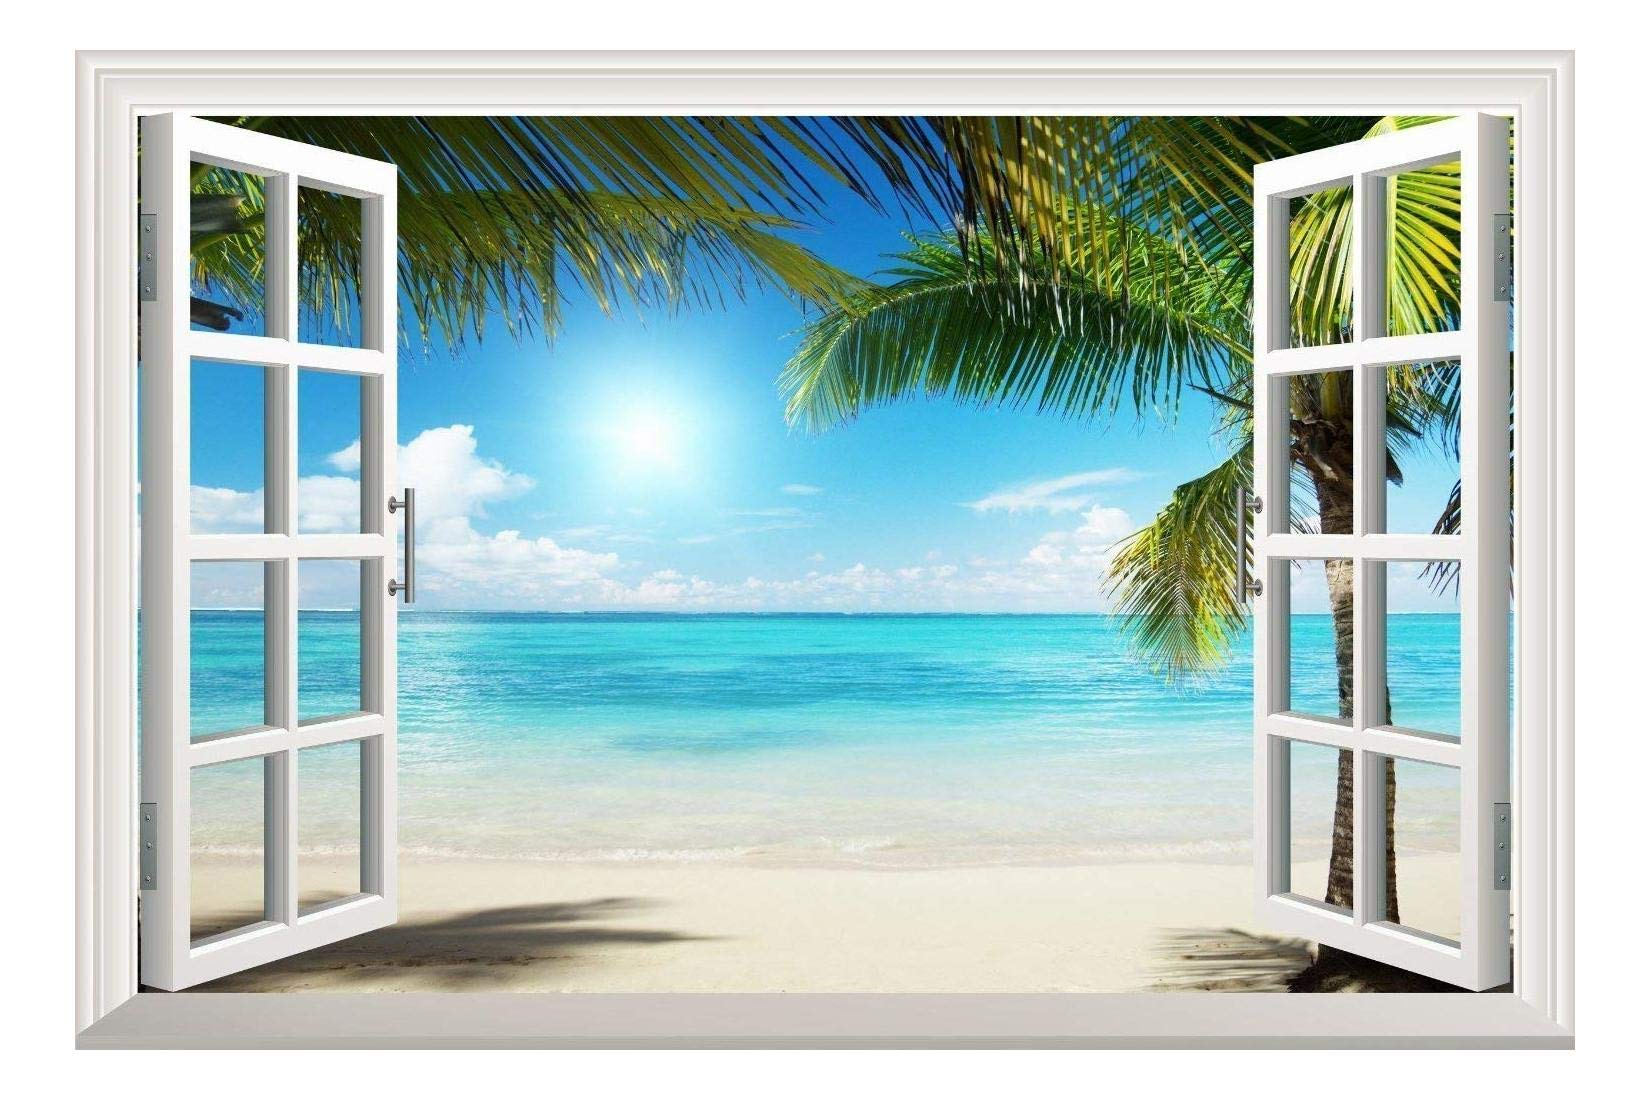 wall26 White Sand Beach with Palm Tree Open Window Wall Mural, Removable Sticker, Home Decor - 24x32 inches by wall26